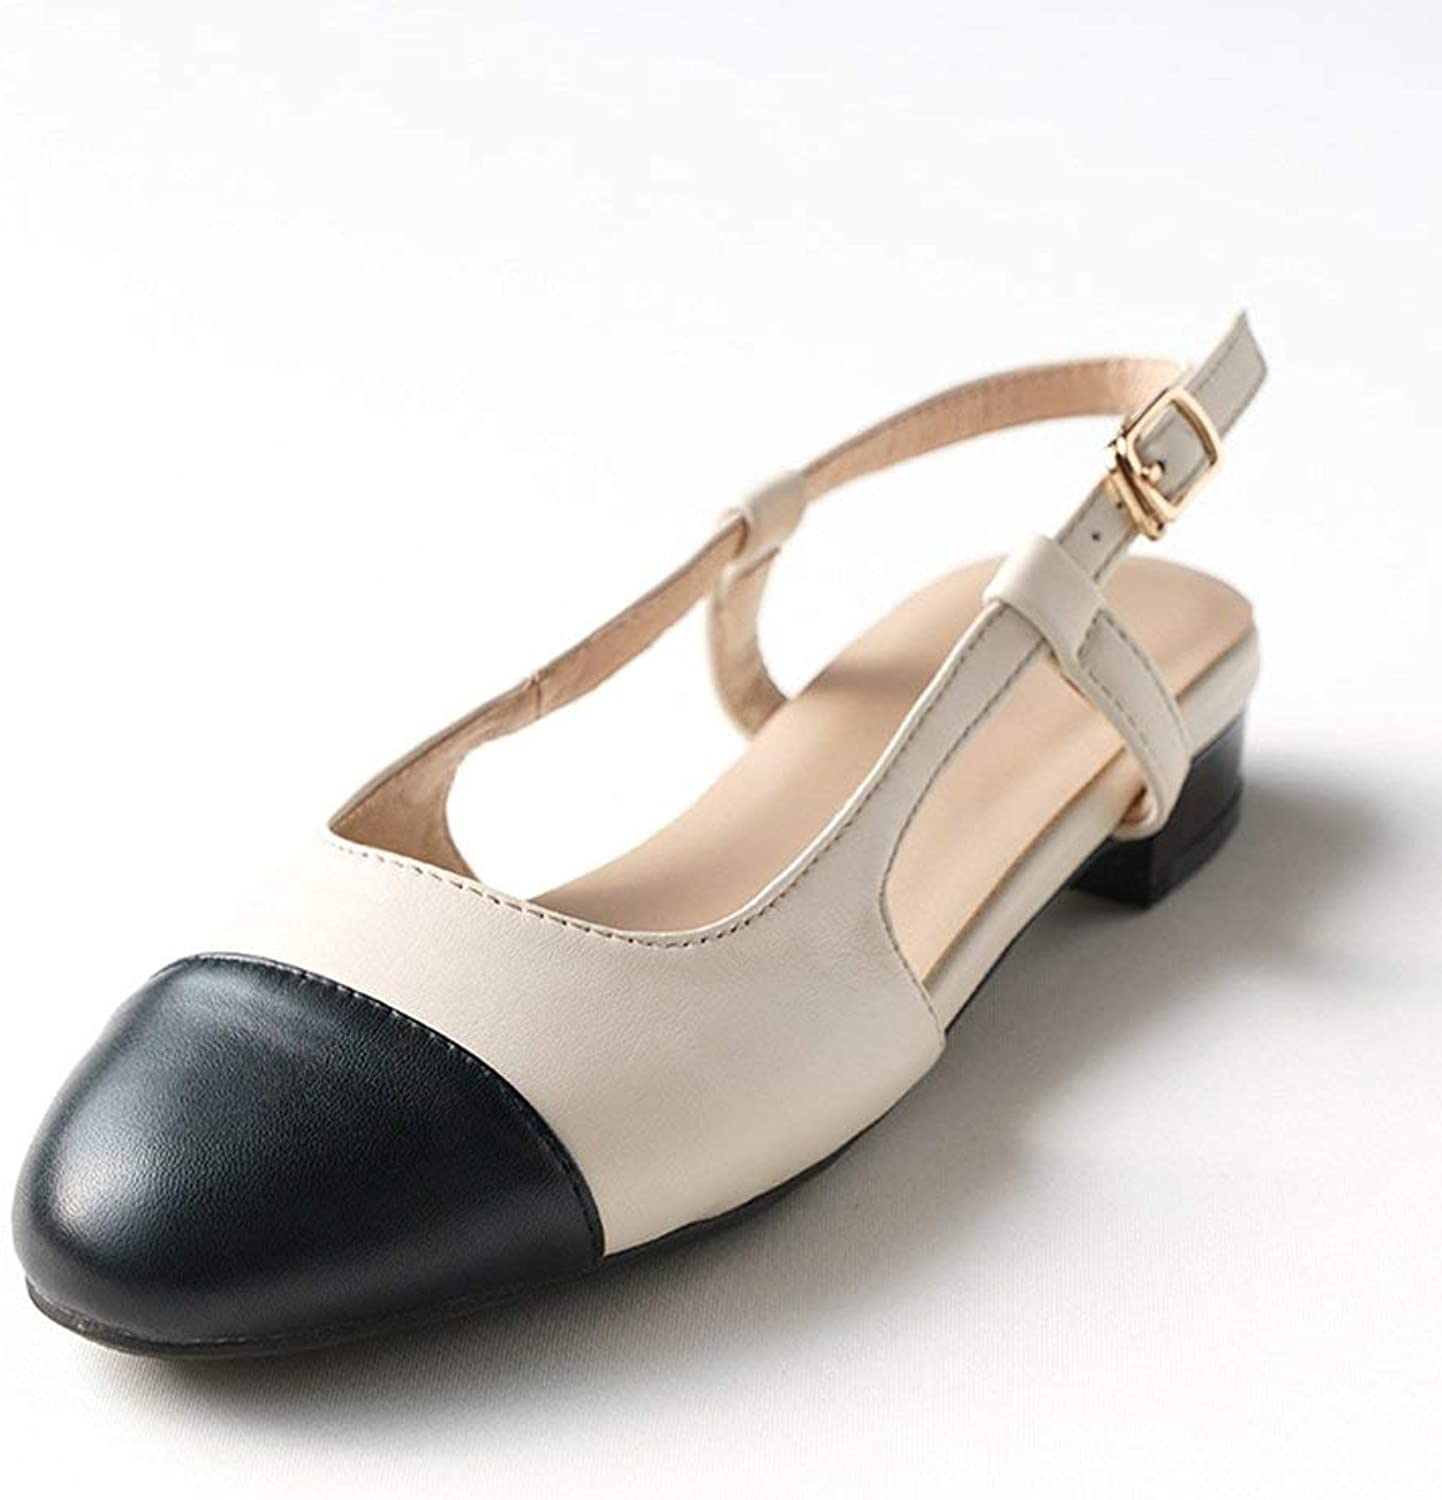 Comfortable and beautiful ladies sandals Sandals Summer Female Mixed colors Round Head Buckle Low-heeled Single shoes